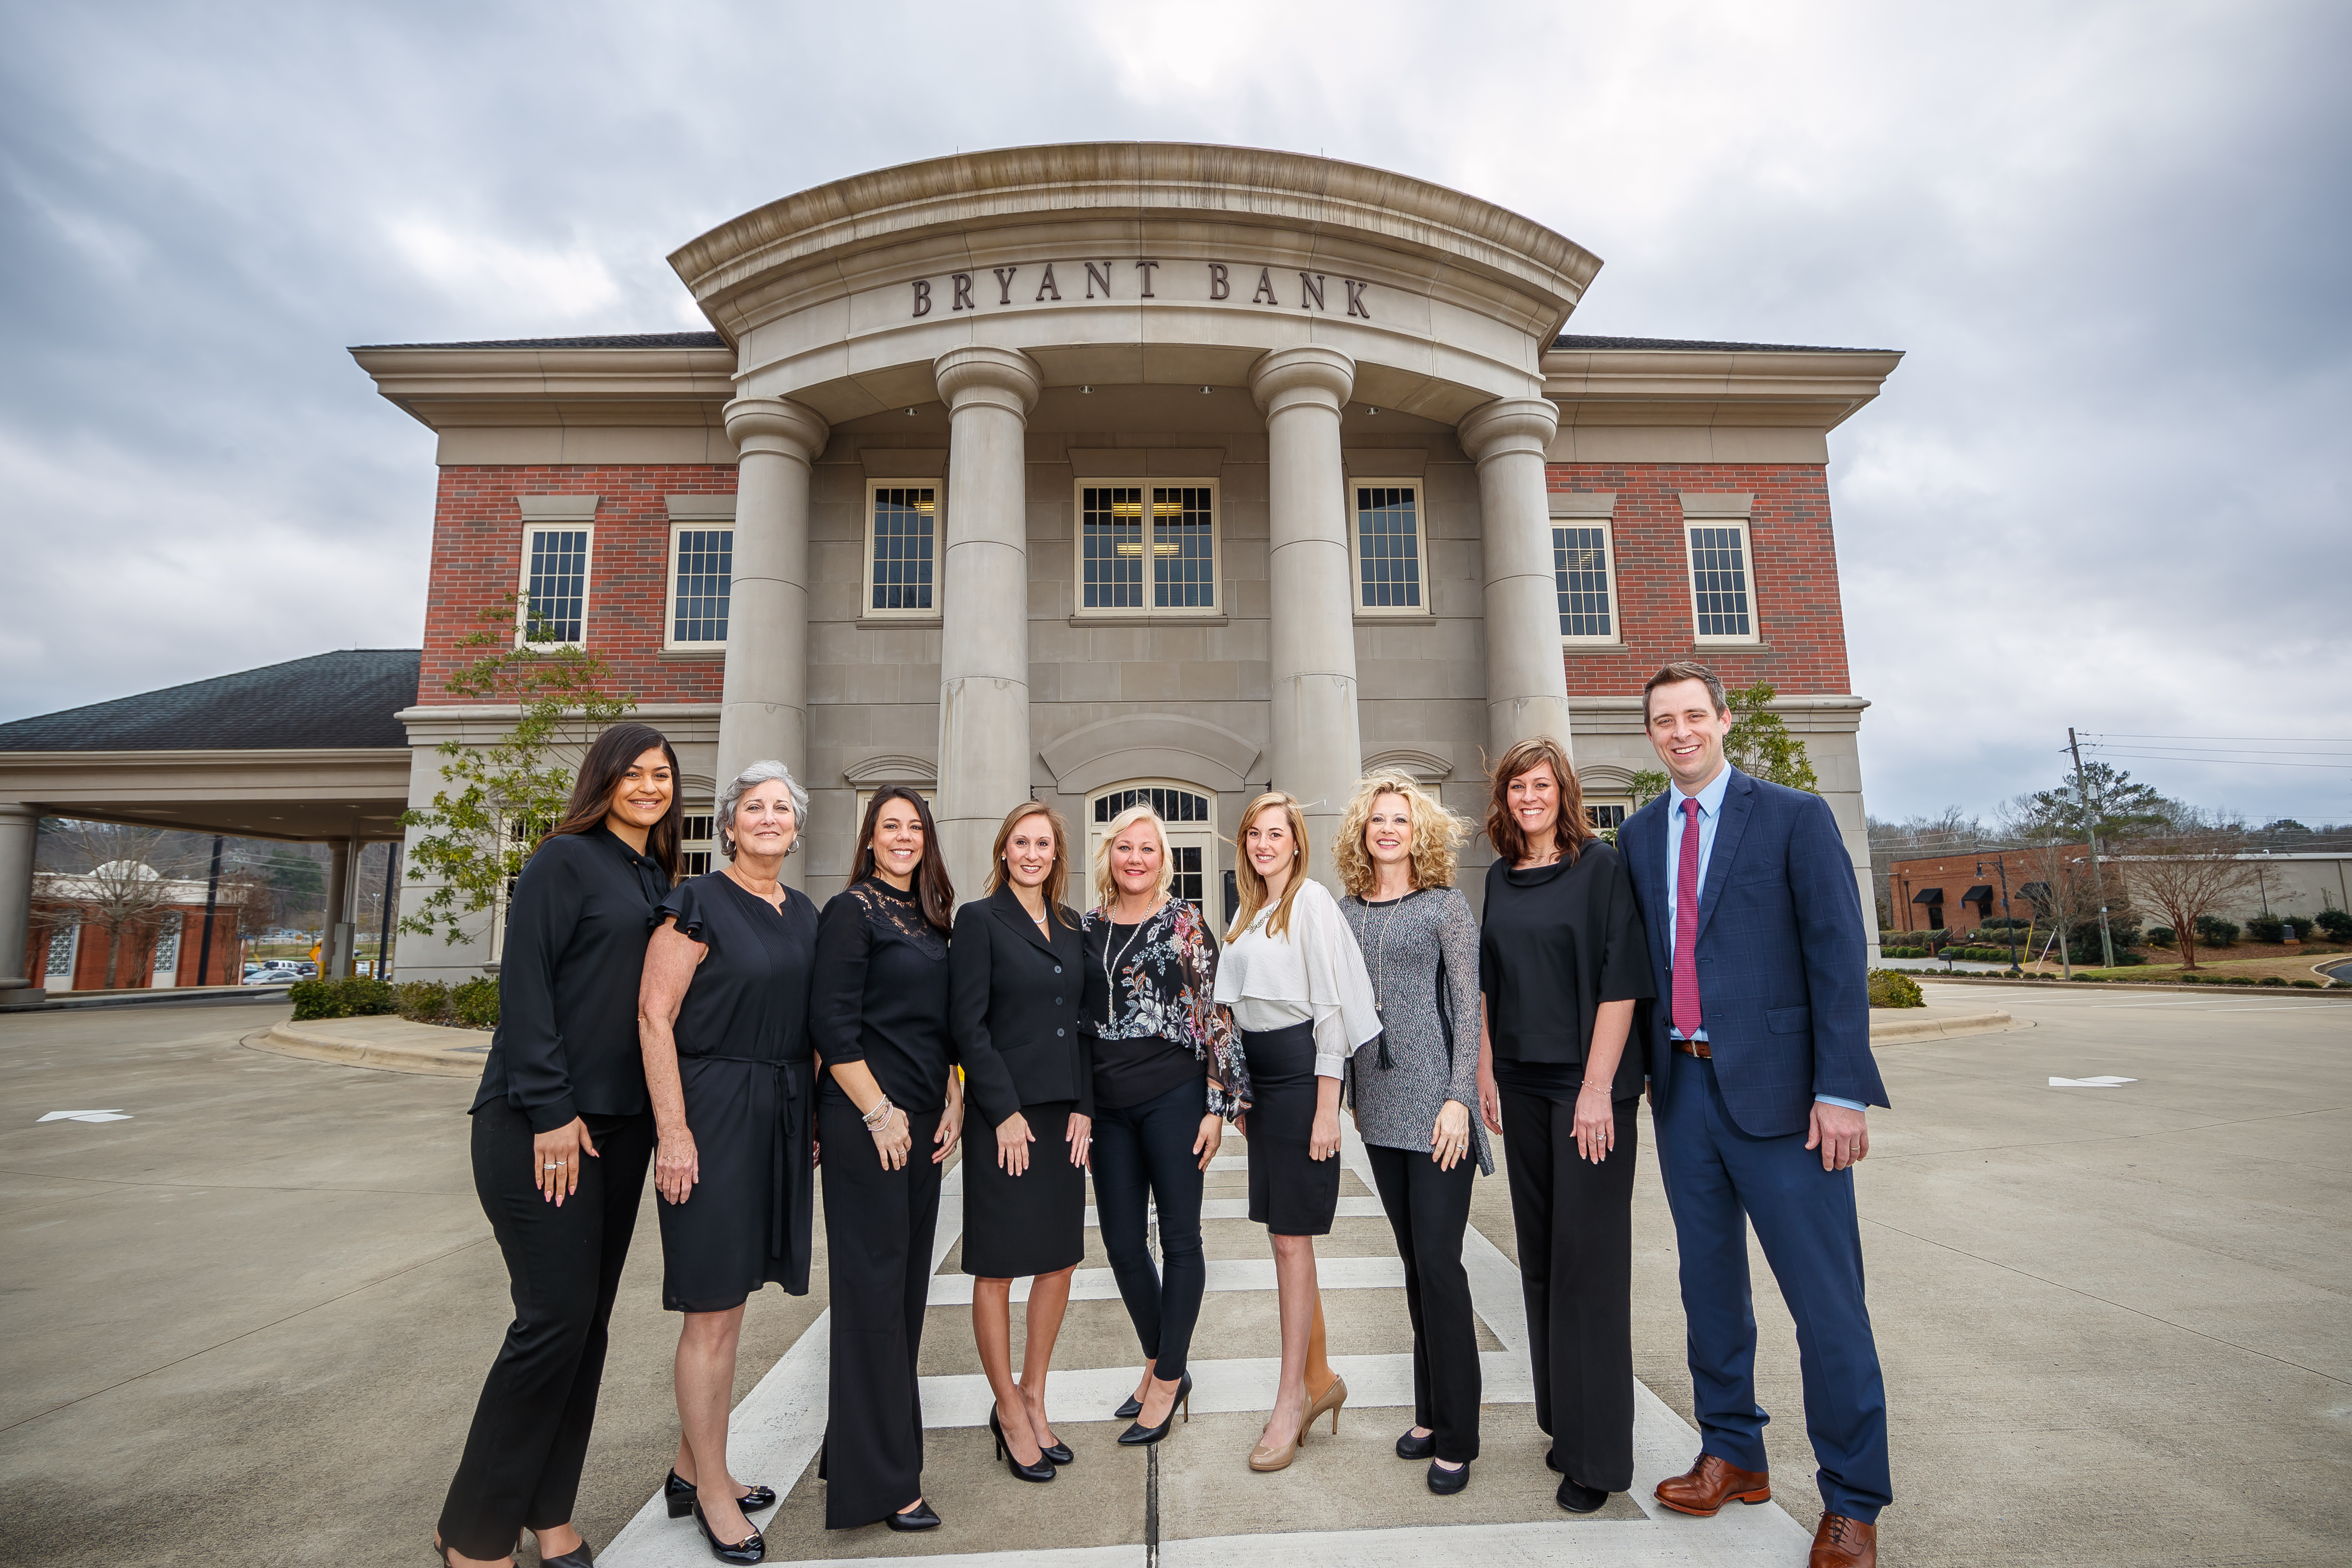 Bryant Bank is Trussville's community bank